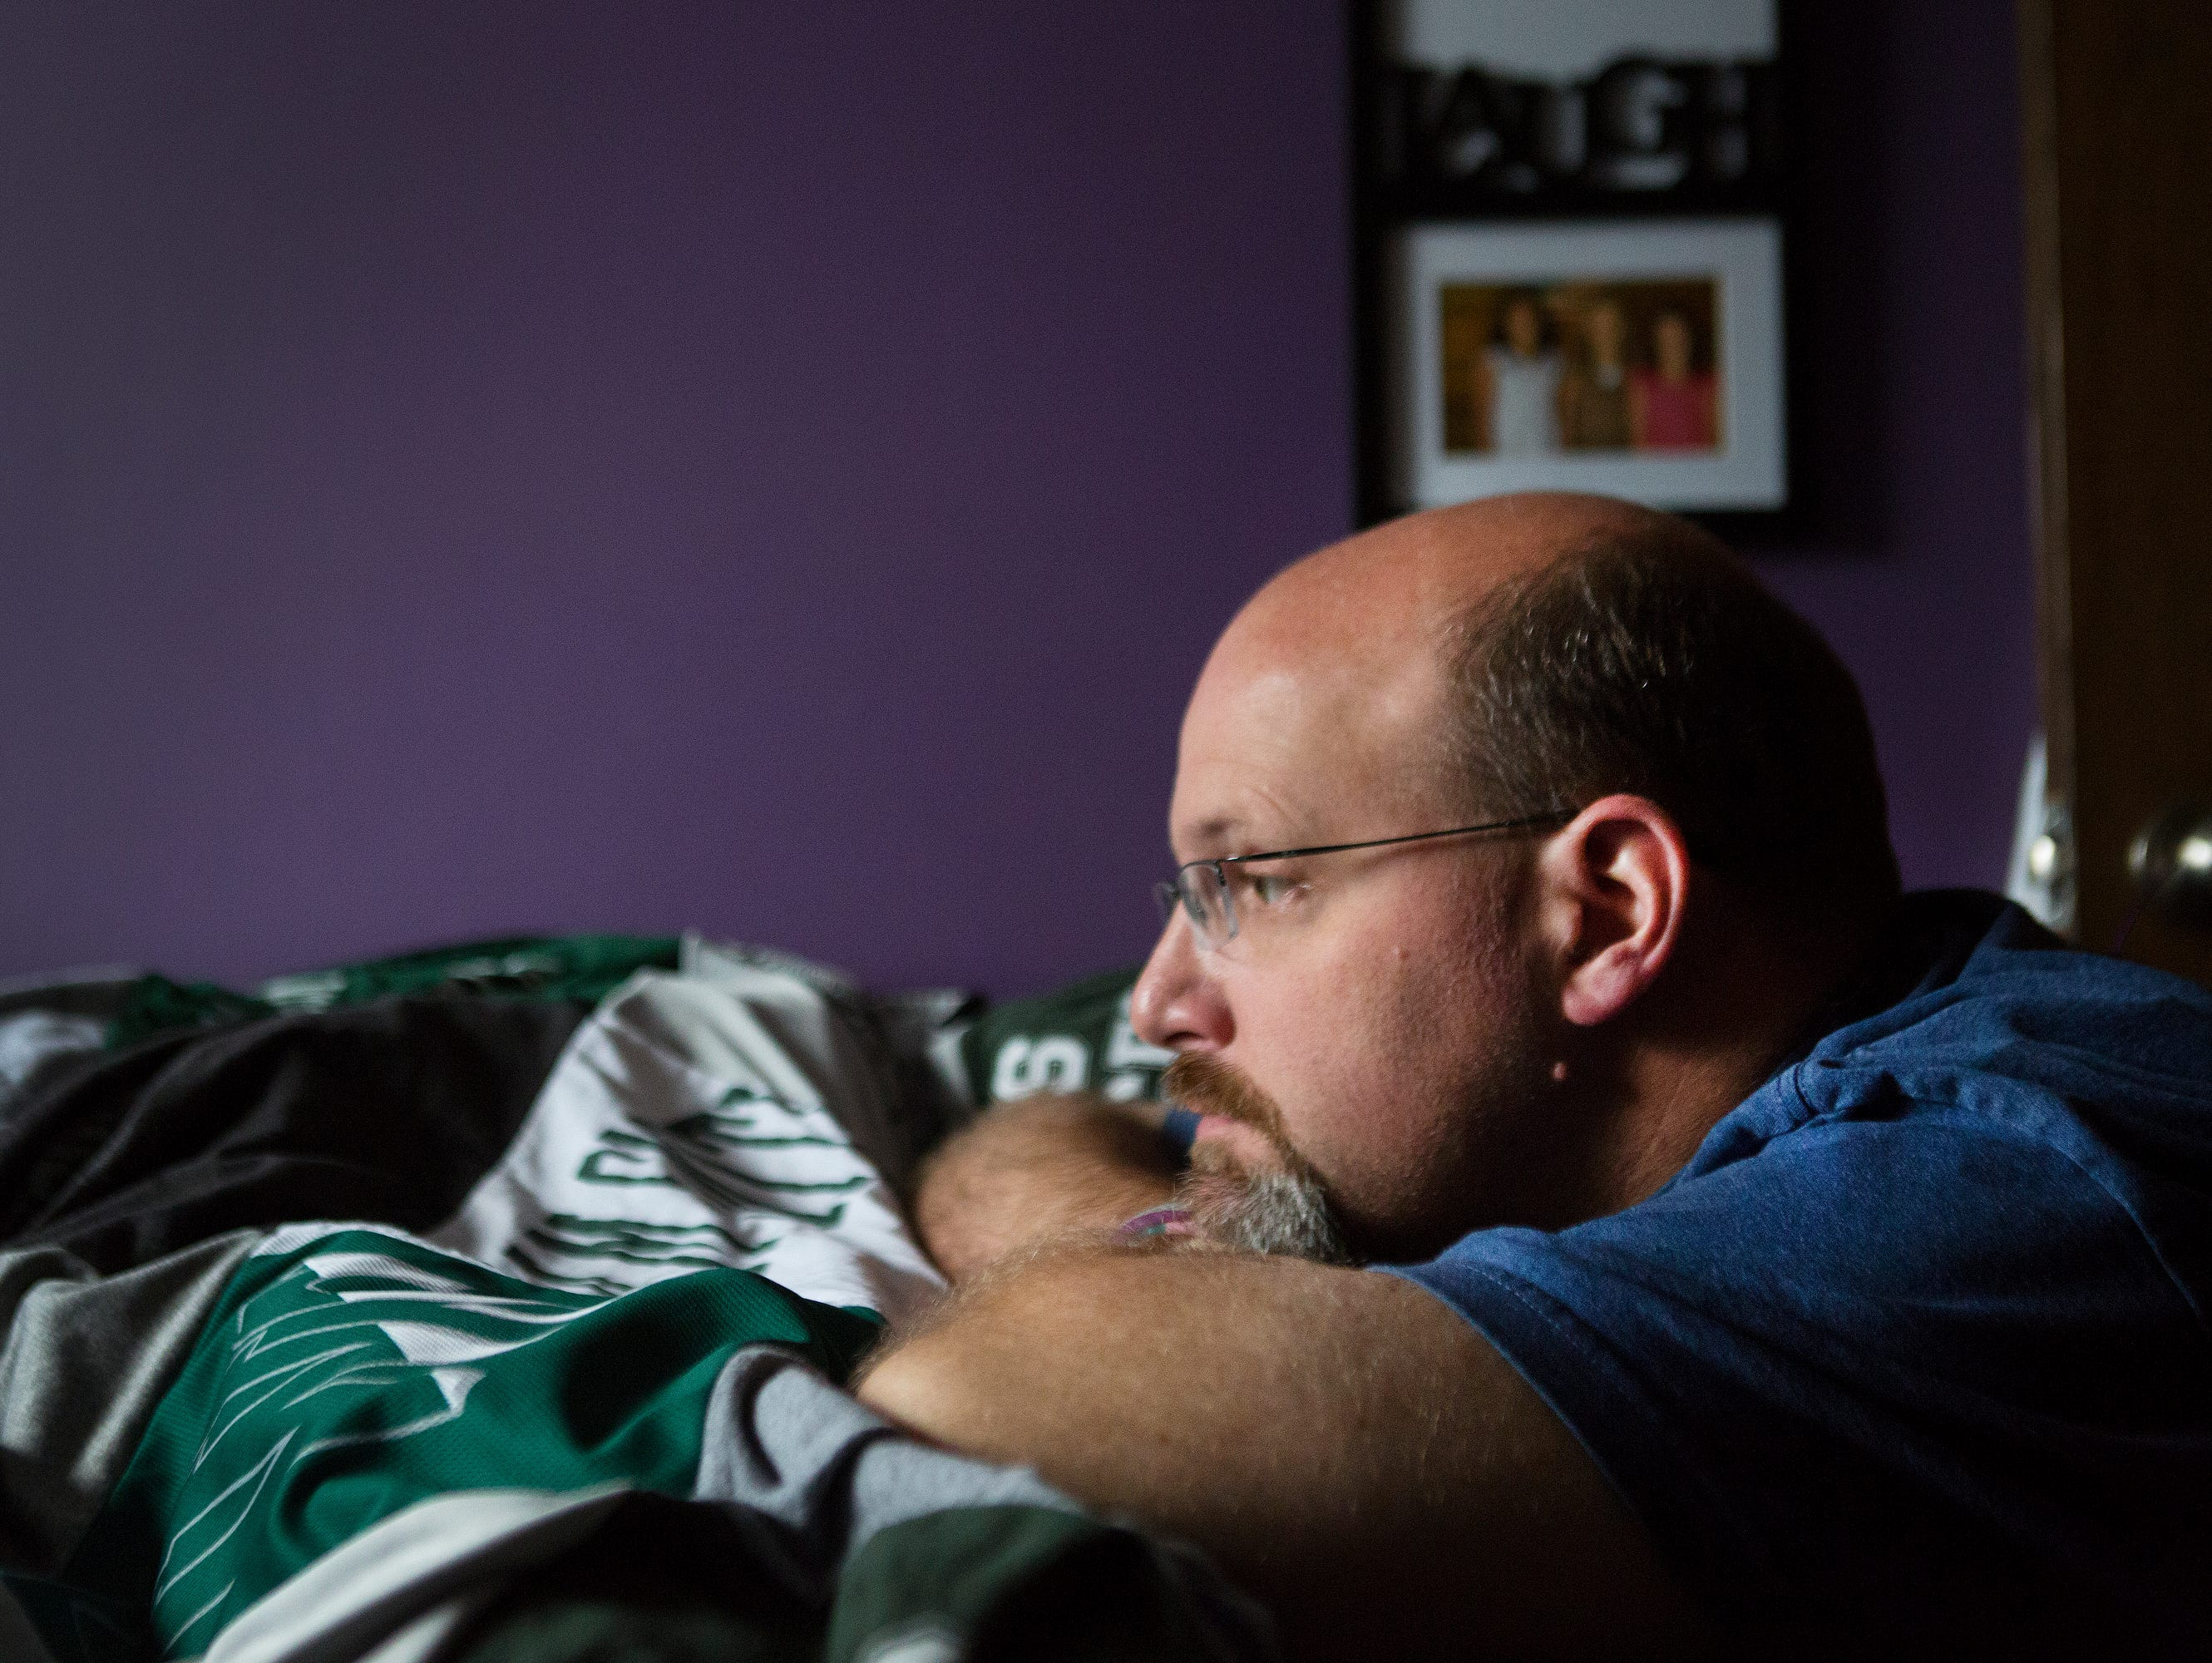 """Courtney Wagner's stepfather, Barry Clark, rests his head at the foot of Courtney's bed in their home in Farmington on Wednesday, October 21, 2015. He described the feeling of being in Courtney's bedroom saying, """"It's very calming. It's peaceful. It's tranquil. It's just easy to be there."""""""